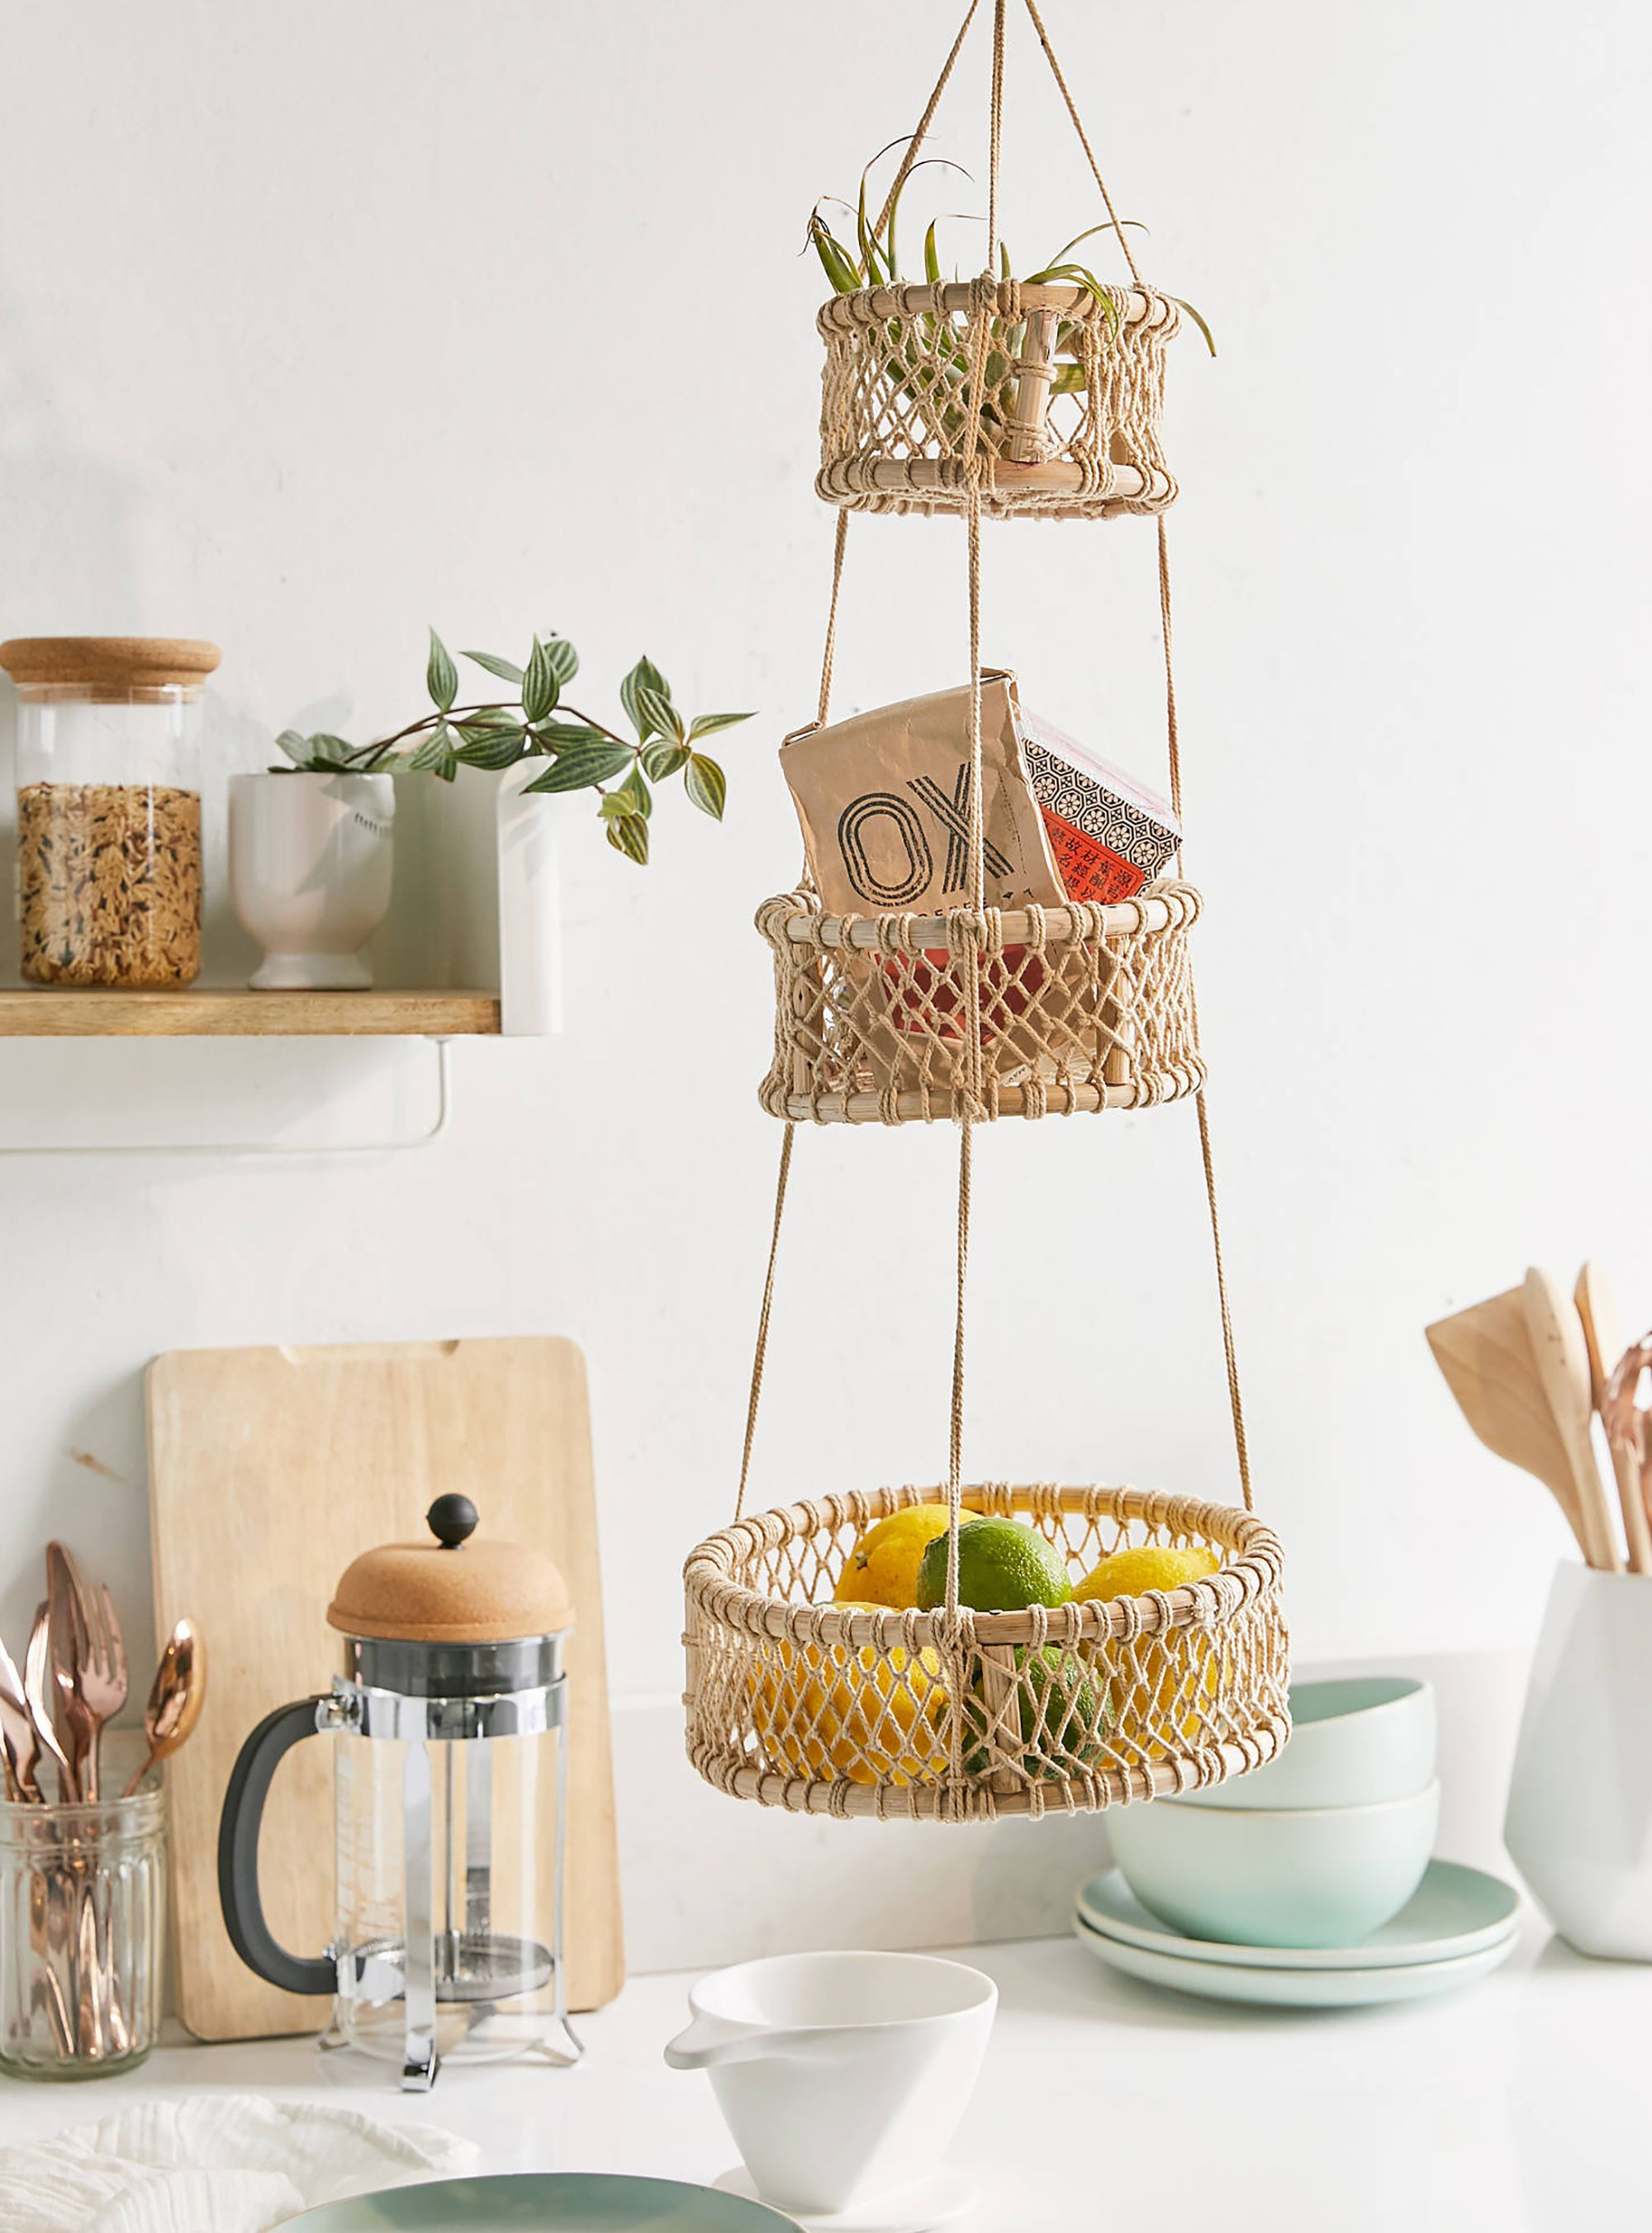 Hanging Basket for Kitchen 3 Tier Hanging Fruit Basket Square Wire Basket with Hanging Basket use Brackets for Wall Hanging or Ceiling Hook with Chalk Board by Z Basket collection